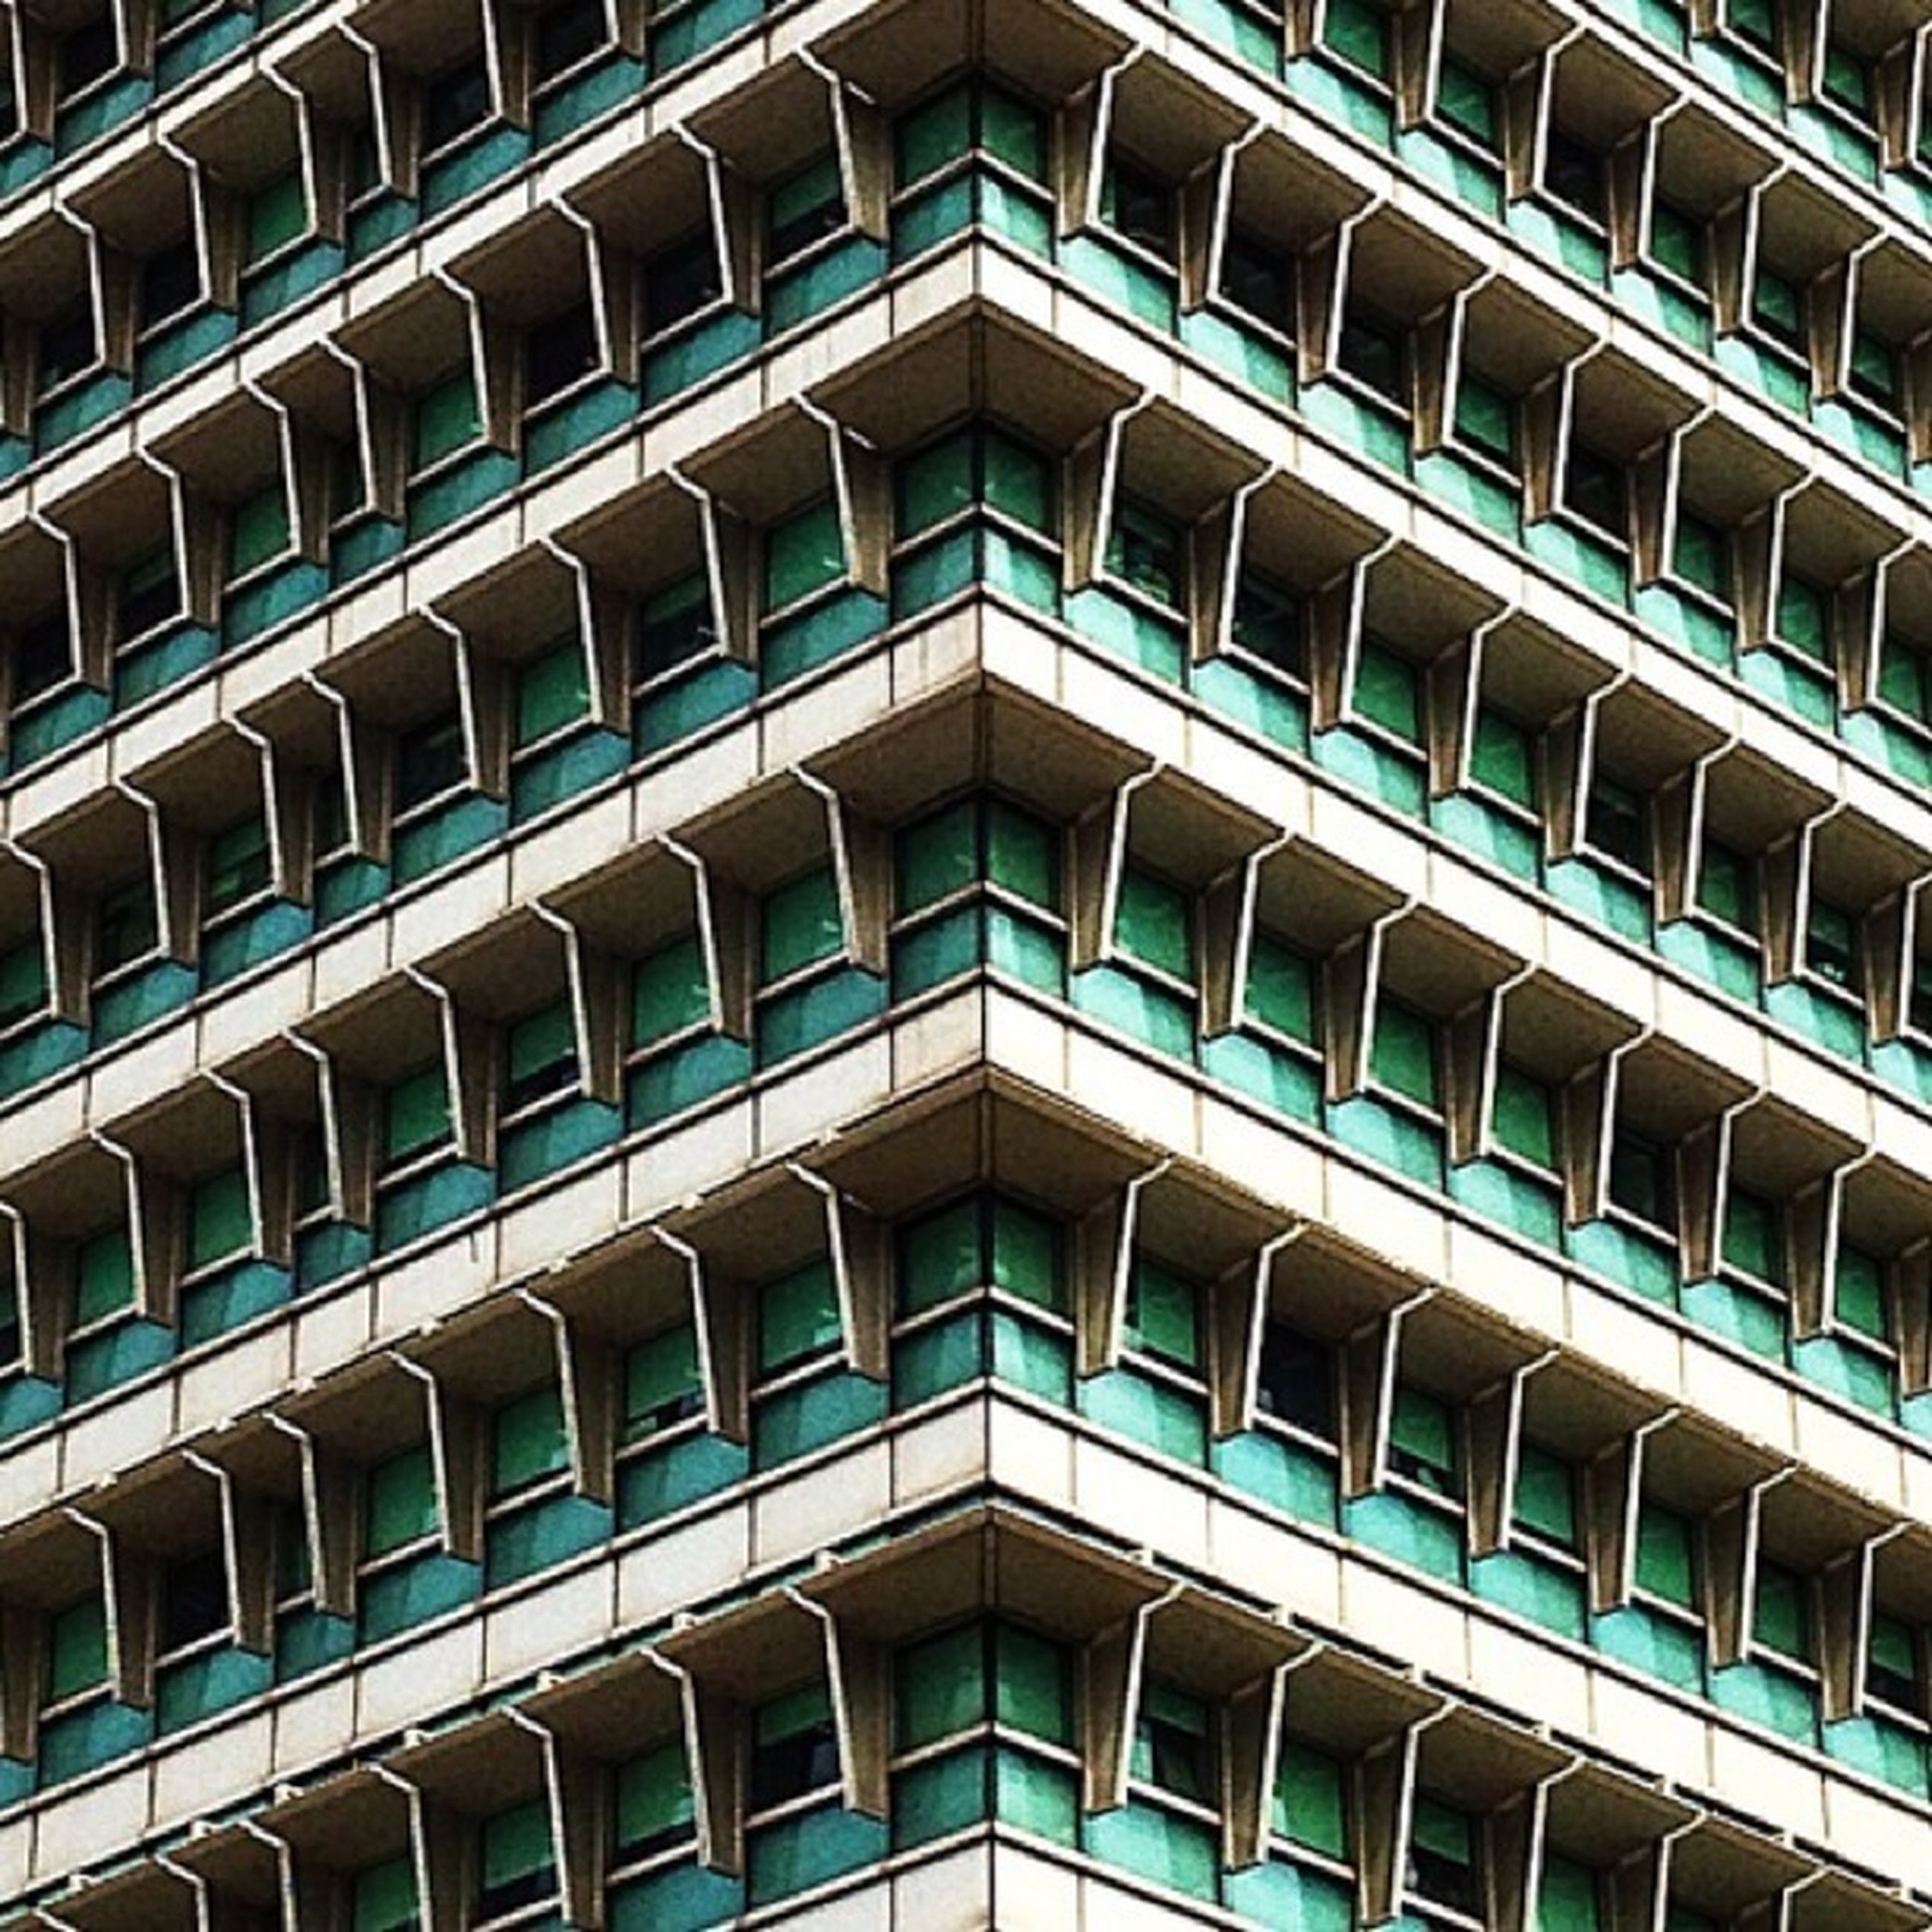 architecture, building exterior, built structure, low angle view, modern, window, city, office building, full frame, repetition, glass - material, building, reflection, backgrounds, pattern, skyscraper, tall - high, in a row, architectural feature, facade